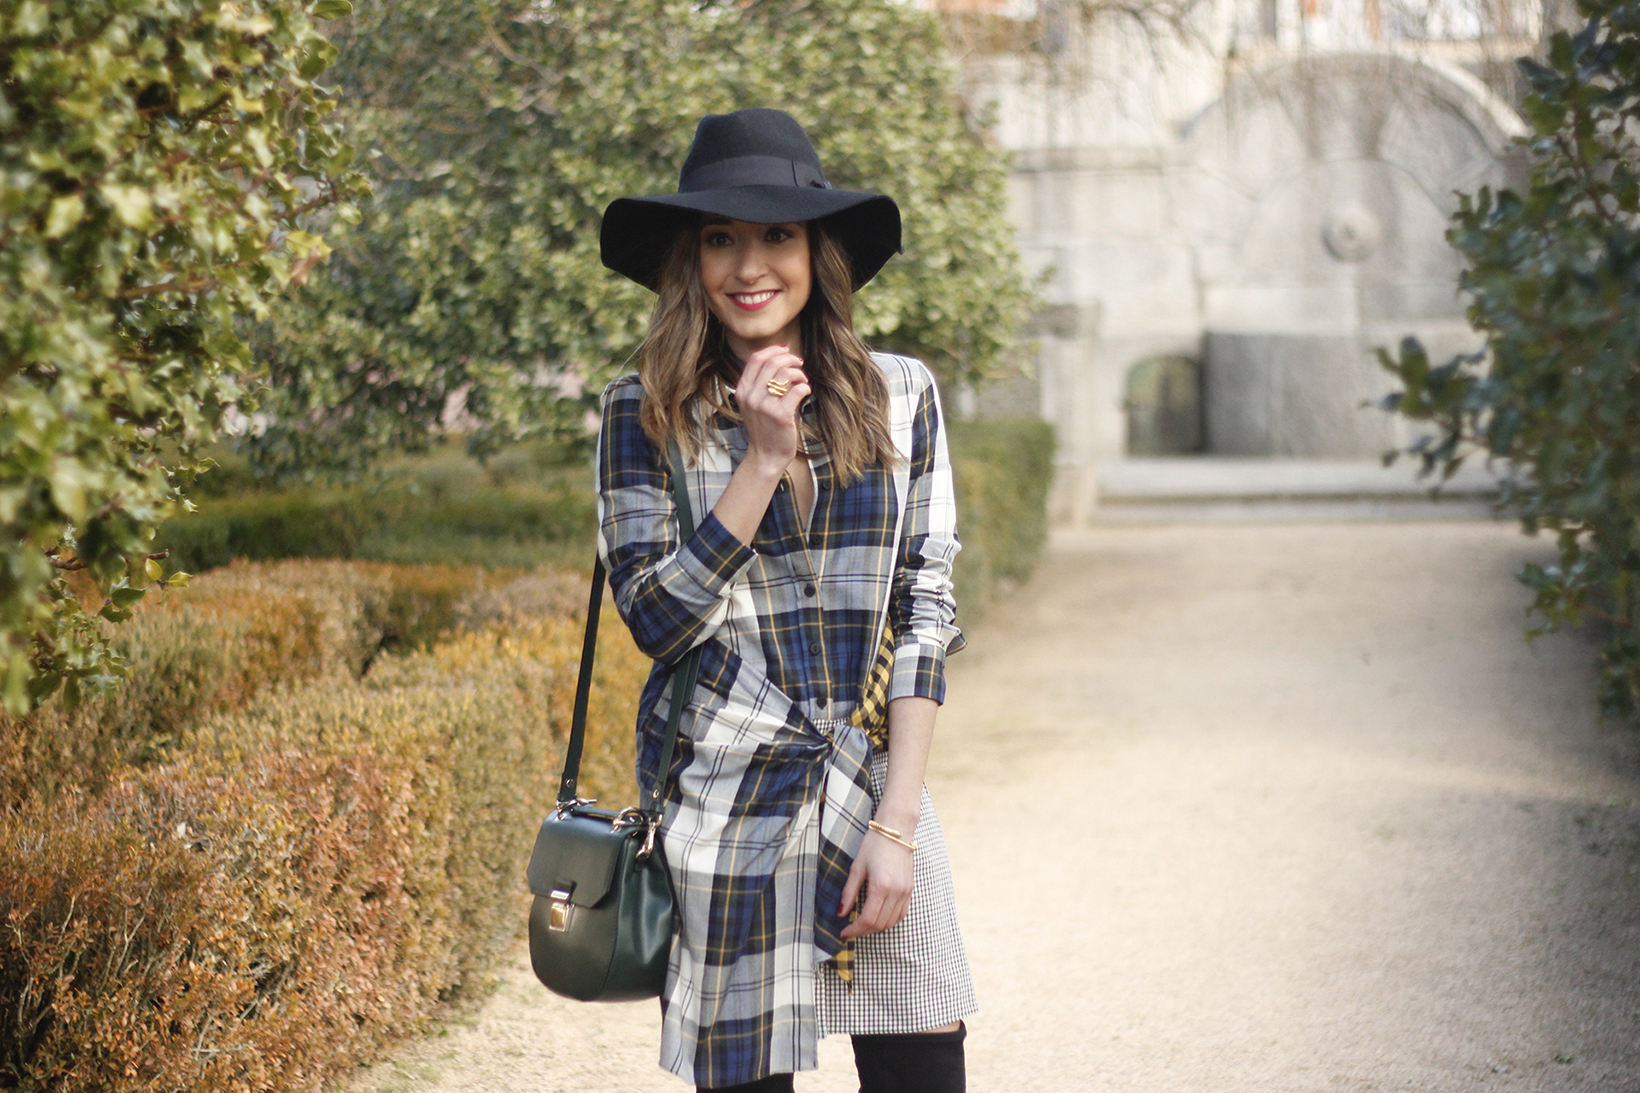 Tartan shirt dress zara over the knee boots mango hat green bag outfit fashion09